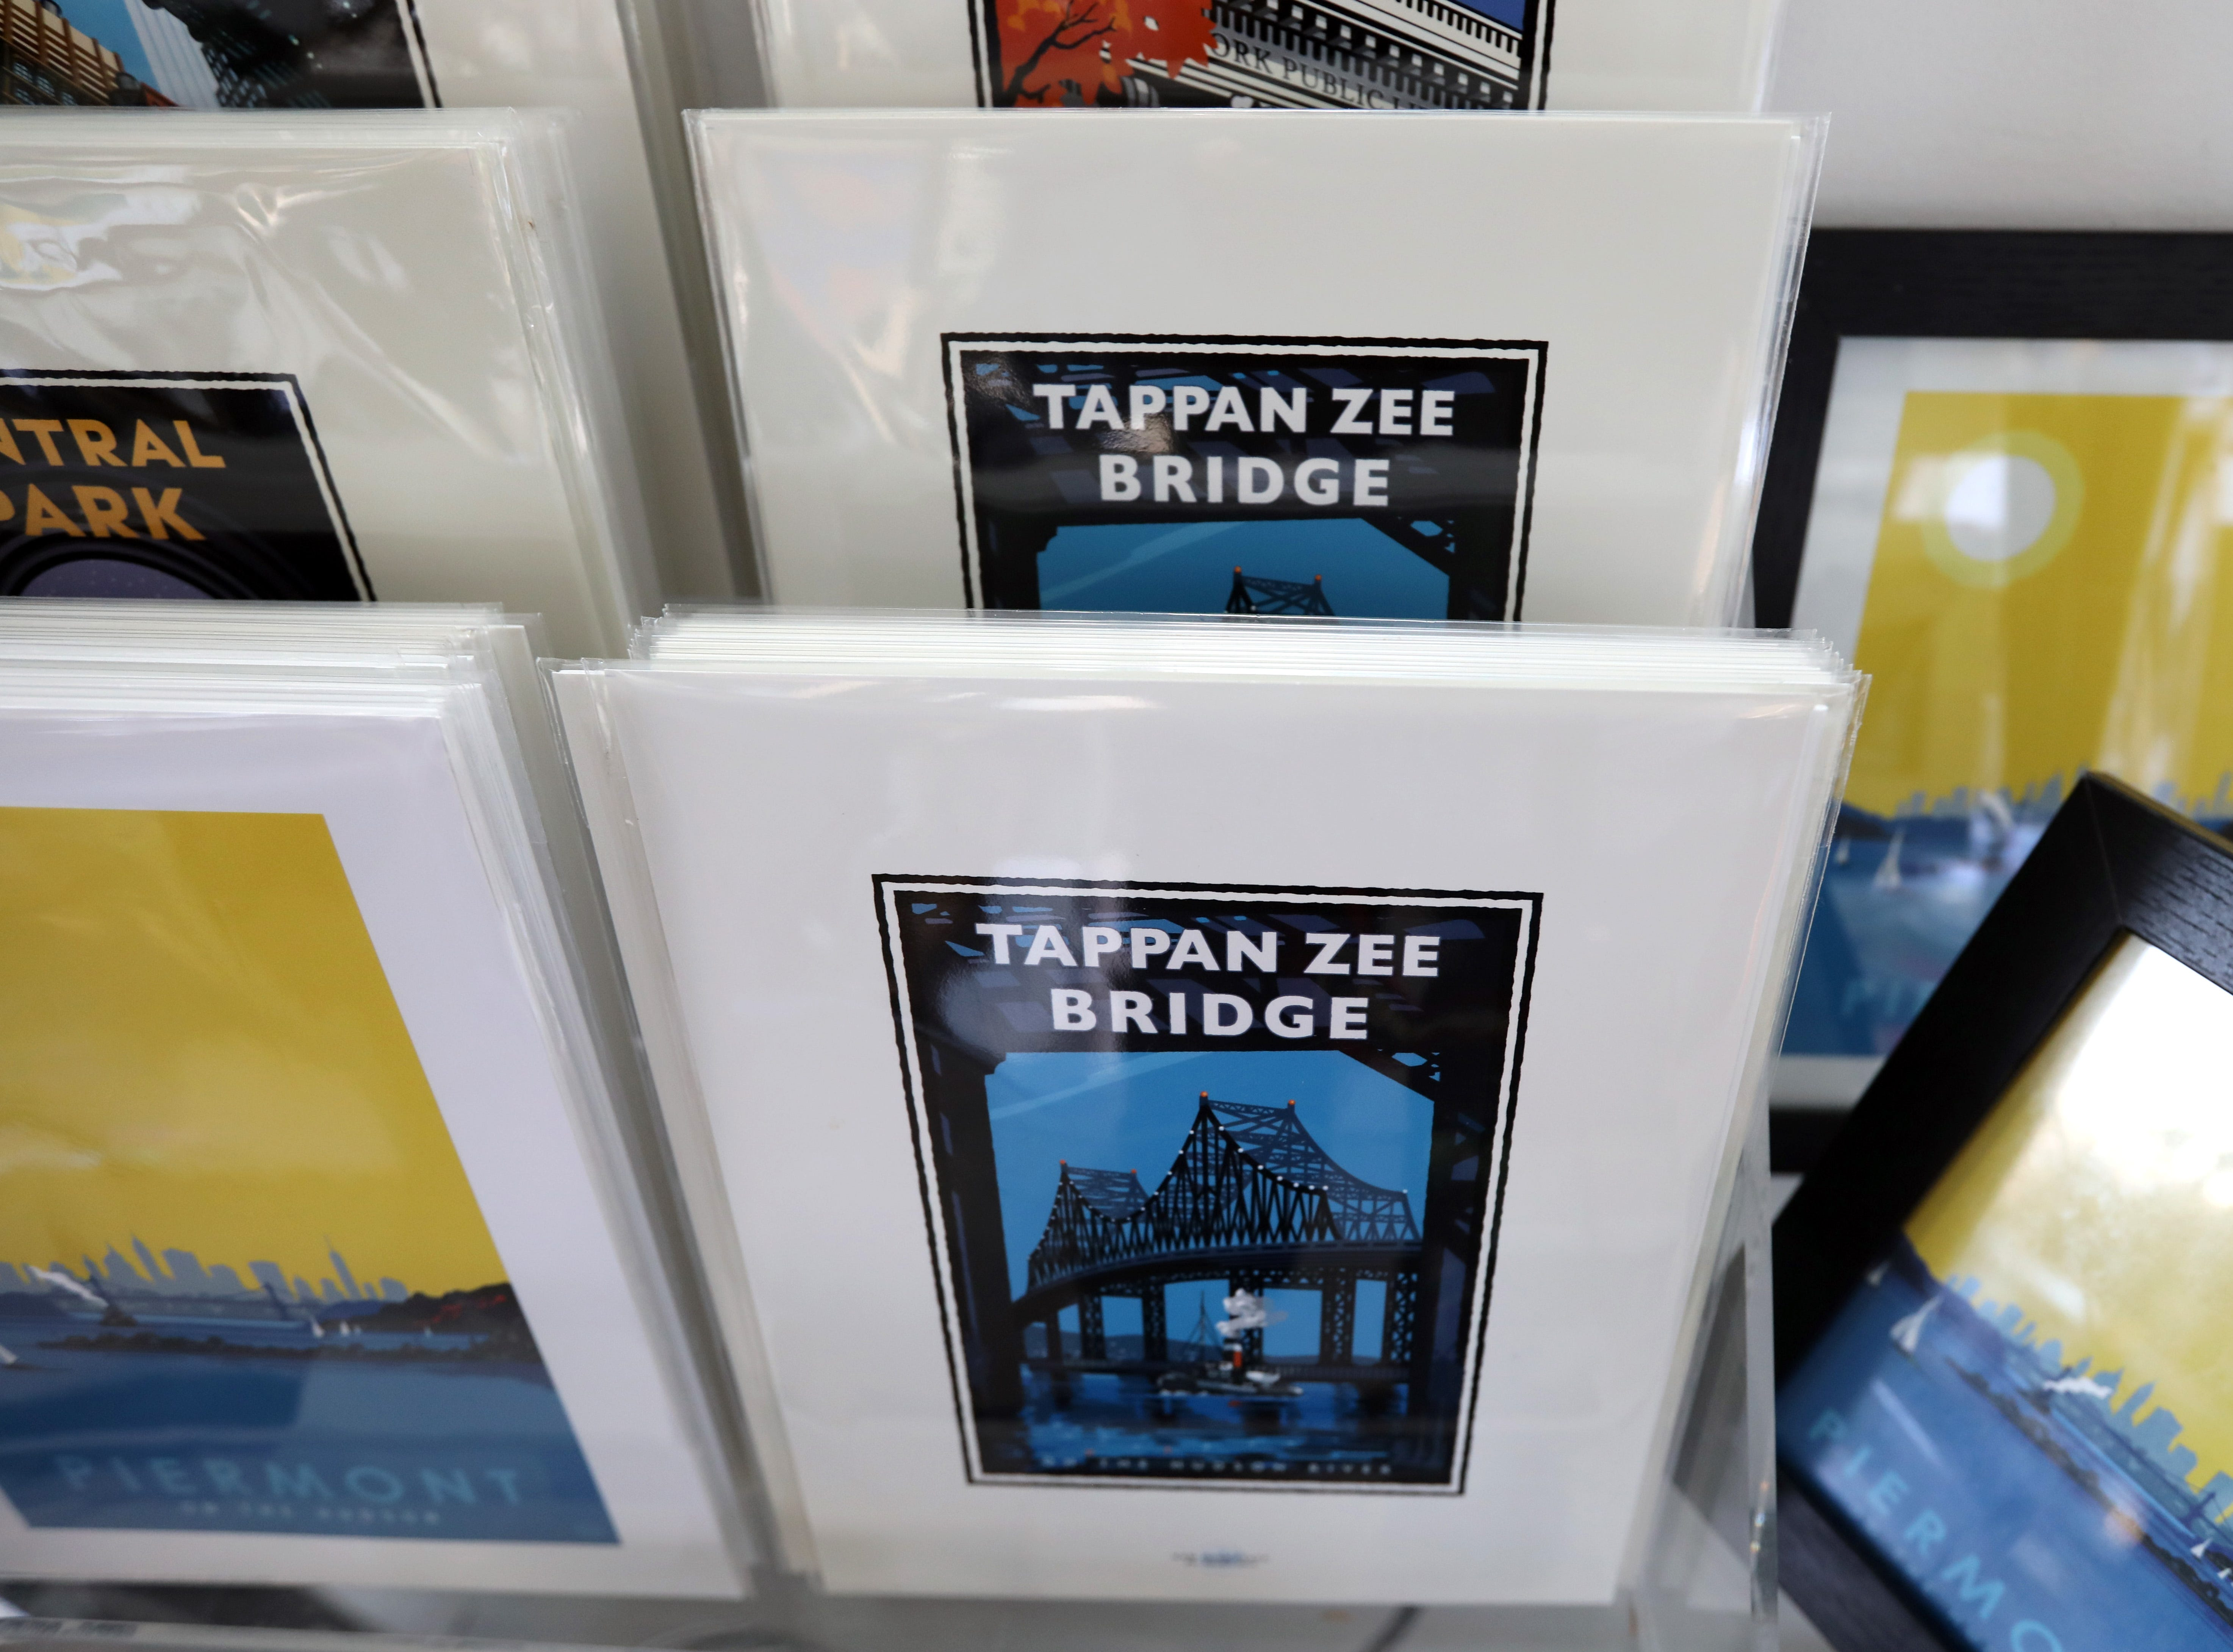 Small posters of the Tappan Zee Bridge by Mark Herman at Piermont Straus in Piermont Jan. 9, 2019.